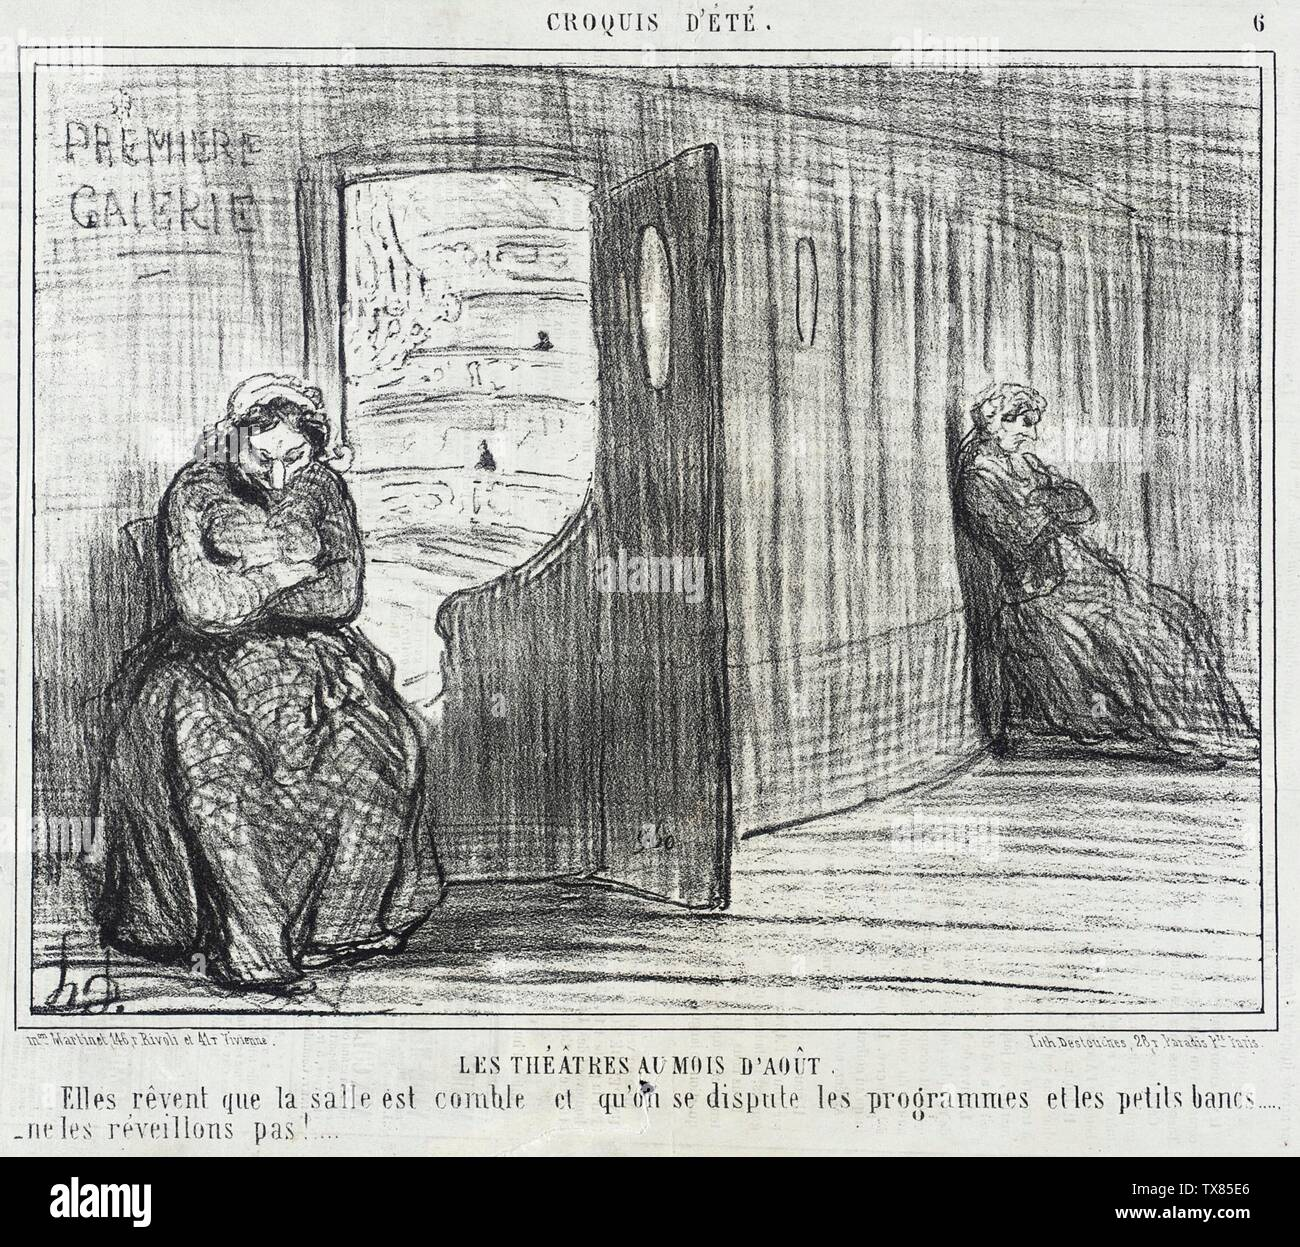 'Les Théâtres au mois d'Août; English:  France, 1856 Series: Croquis d'été Periodical: Le Charivari, 21 August 1856 Prints; lithographs Lithograph Sheet: 7 13/16 x 10 1/8 in. (19.84 x 25.72 cm) Gift of Mrs. Florence Victor from The David and Florence Victor Collection (M.91.82.295) Prints and Drawings; 1856date QS:P571,+1856-00-00T00:00:00Z/9; ' - Stock Image